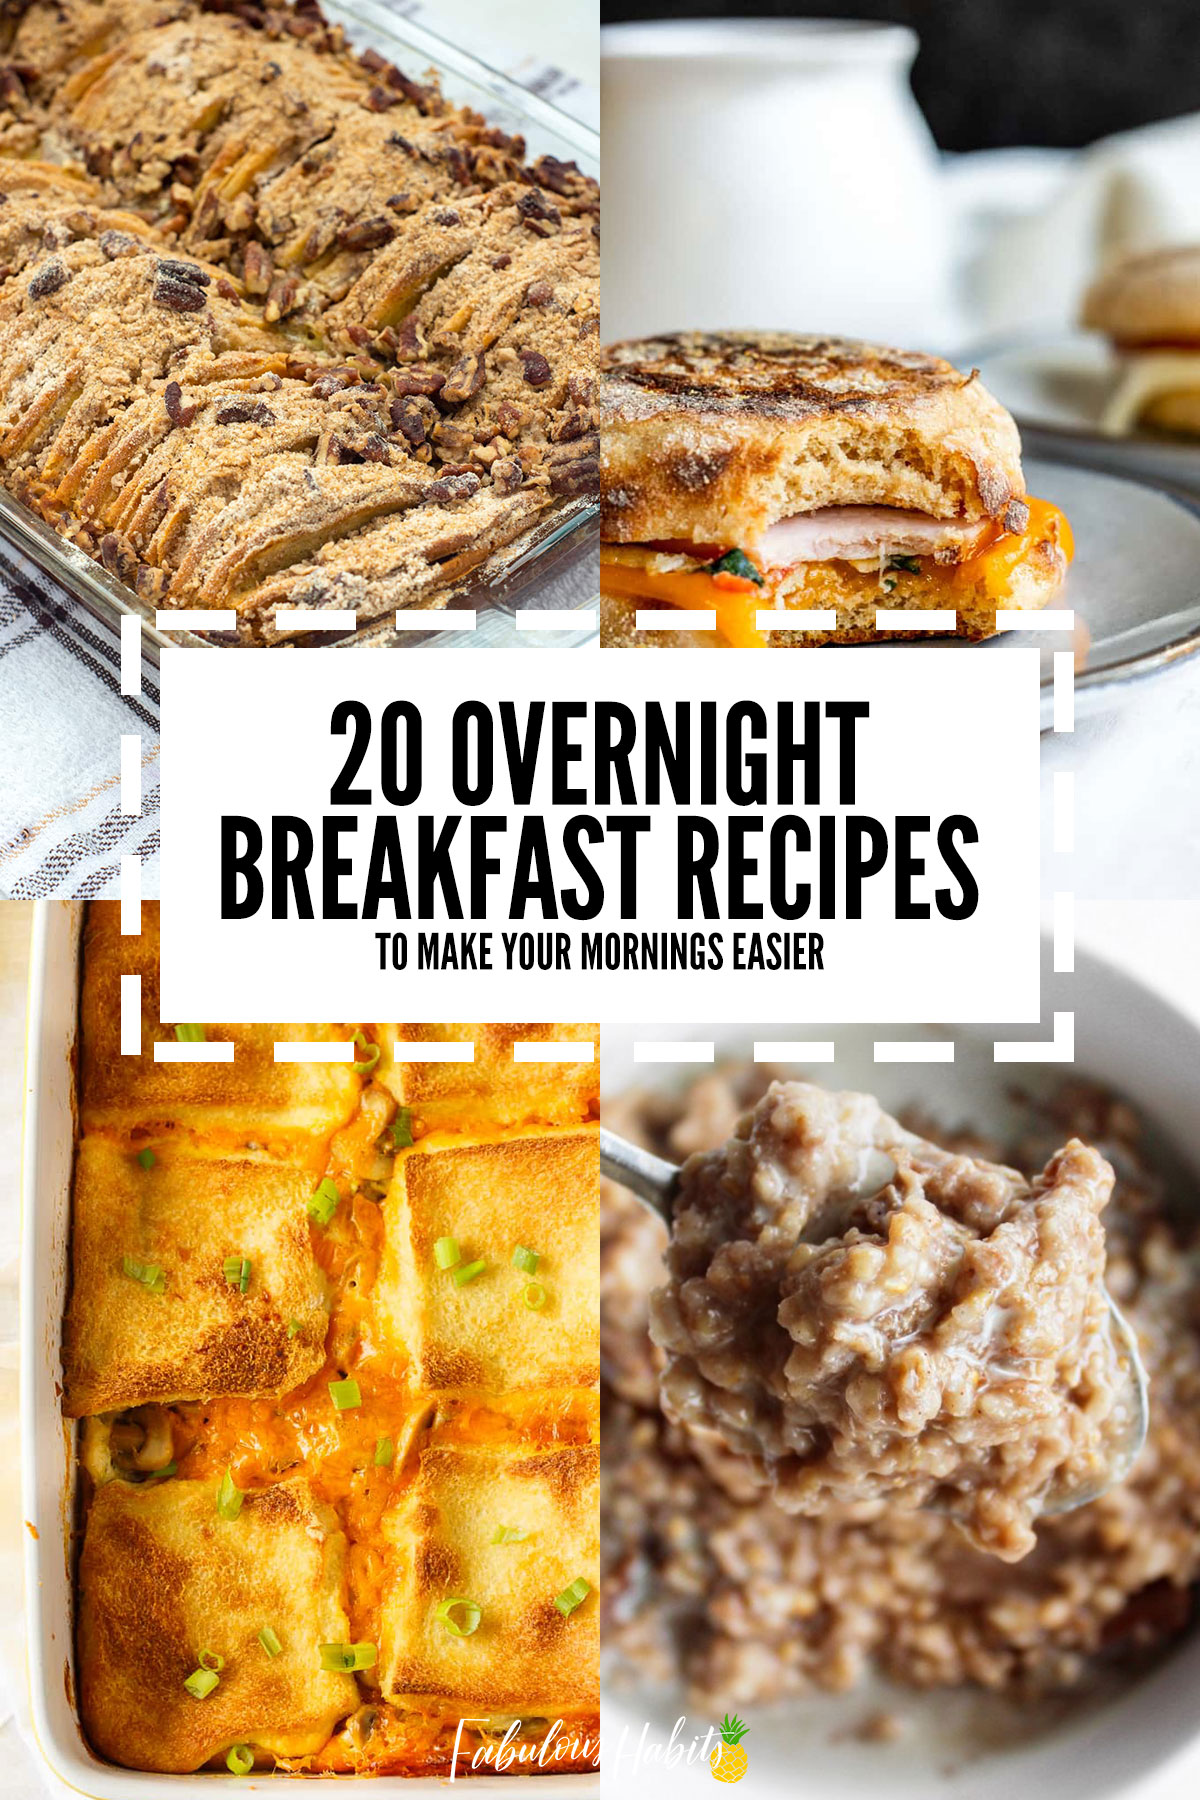 These 20 overnight breakfast recipes will give you a bit of a break in the morning - because we're not all morning people! #breakfastsolutions